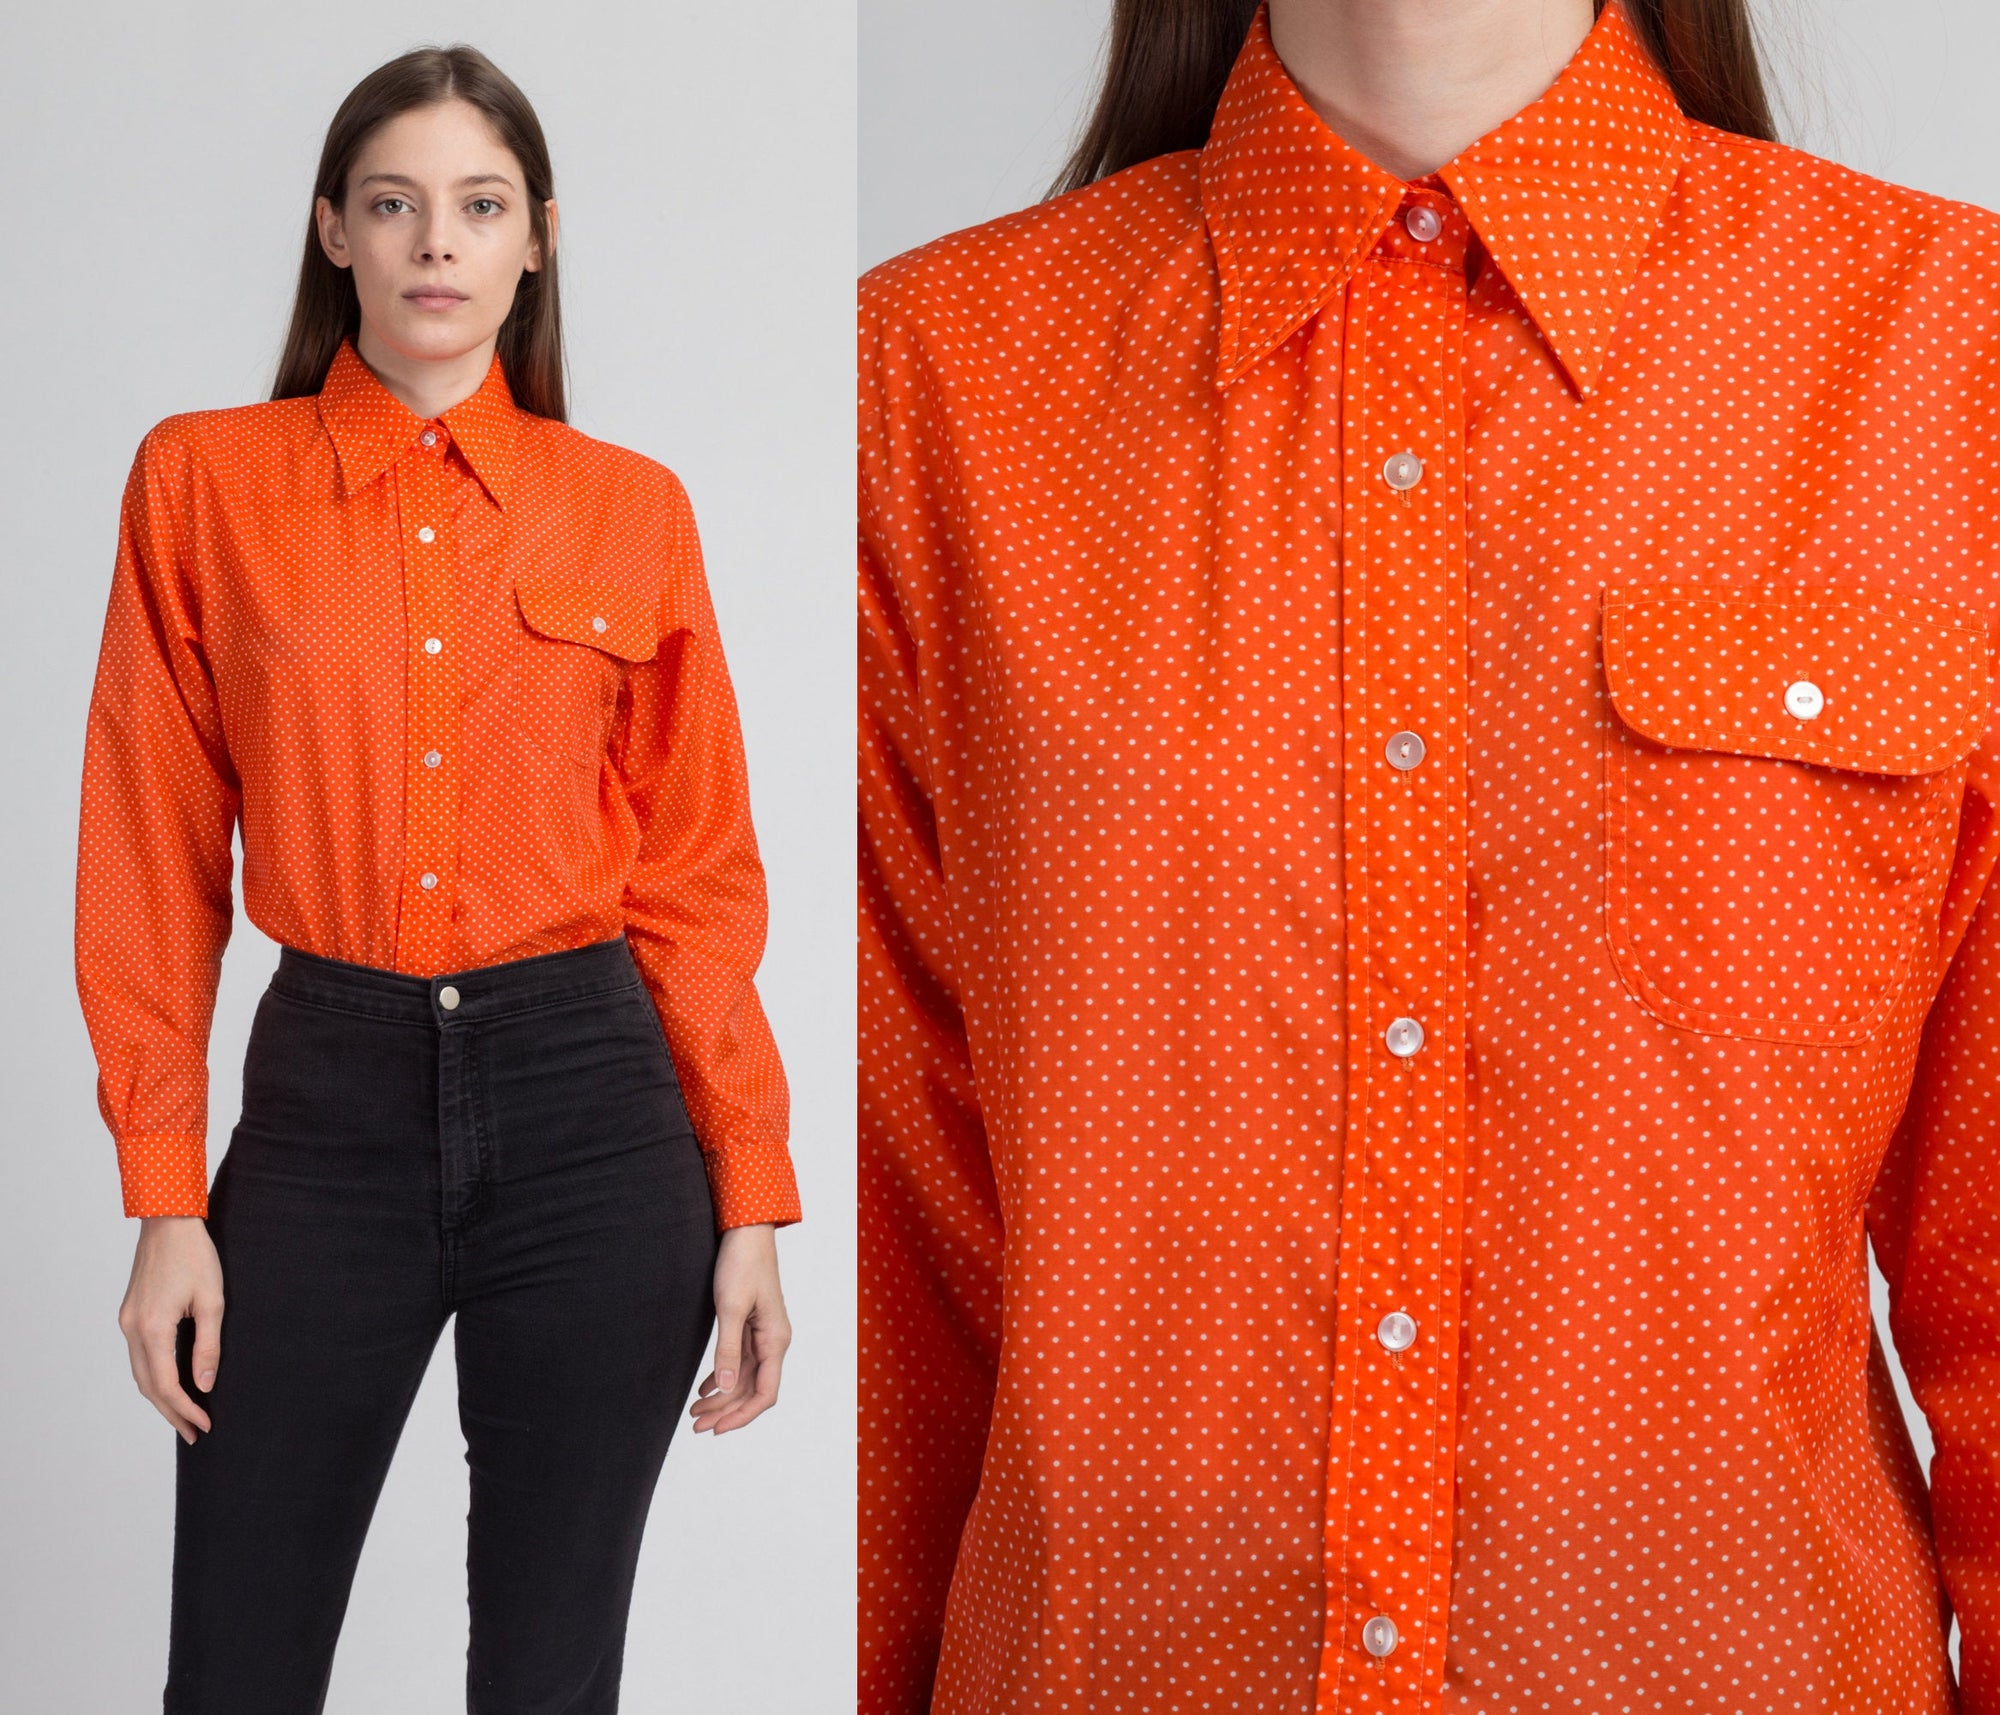 70s Orange Polka Dot Saska Ski Shirt - Large